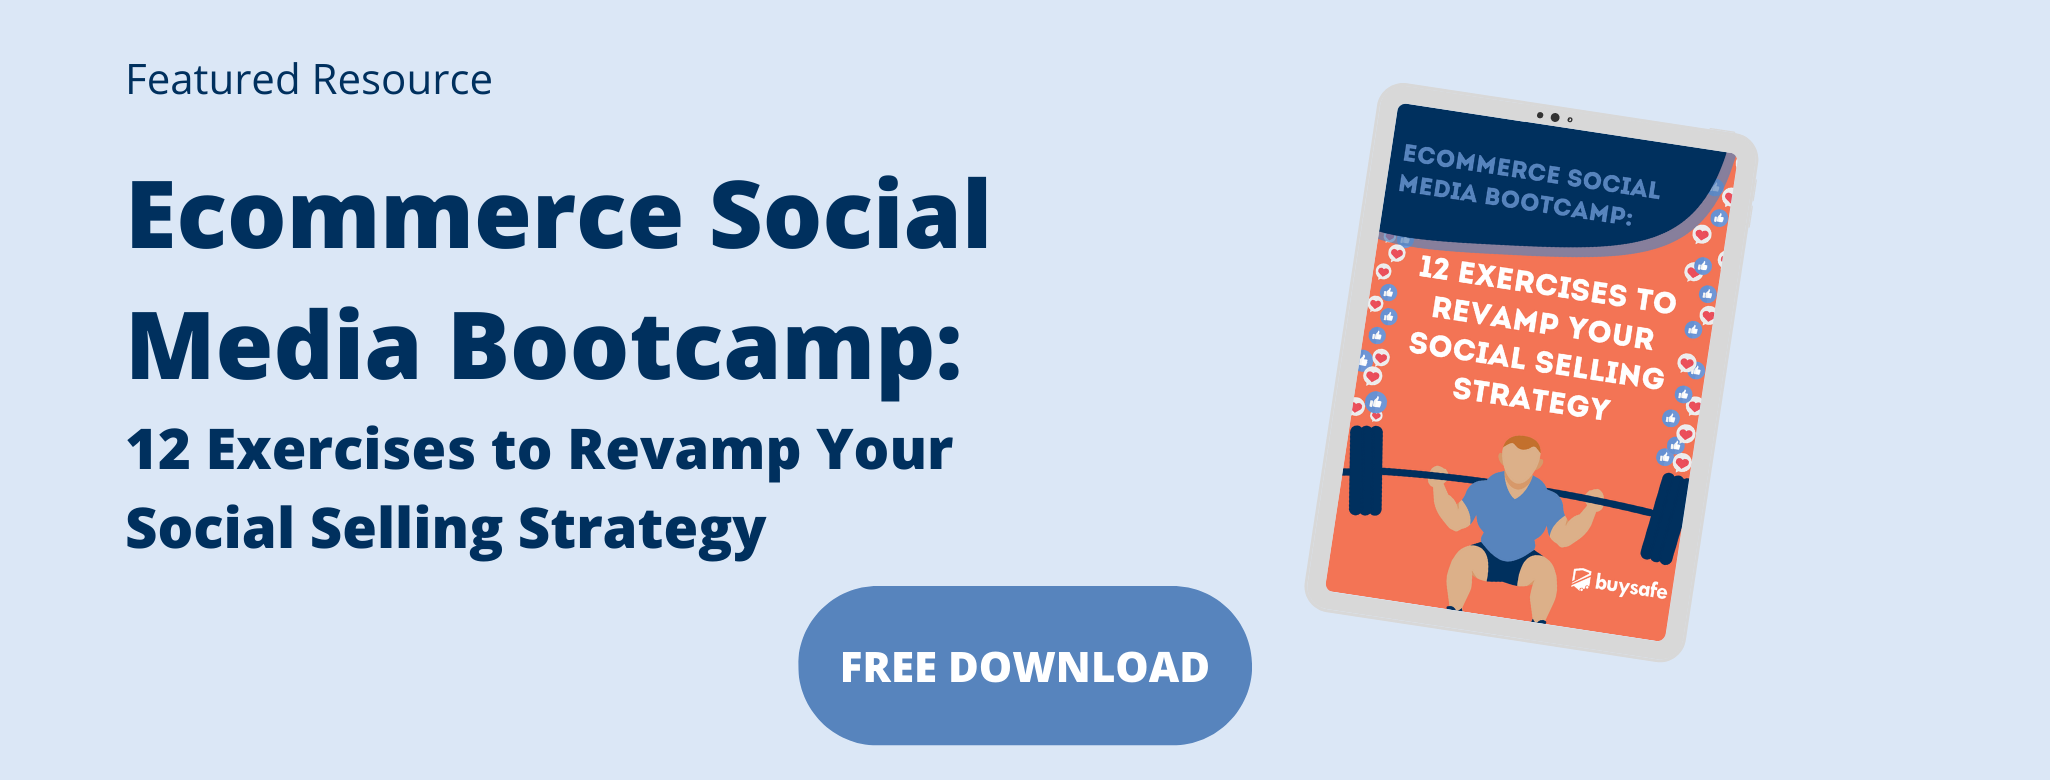 Featured resource: Ecommerce Social Media Bootcamp